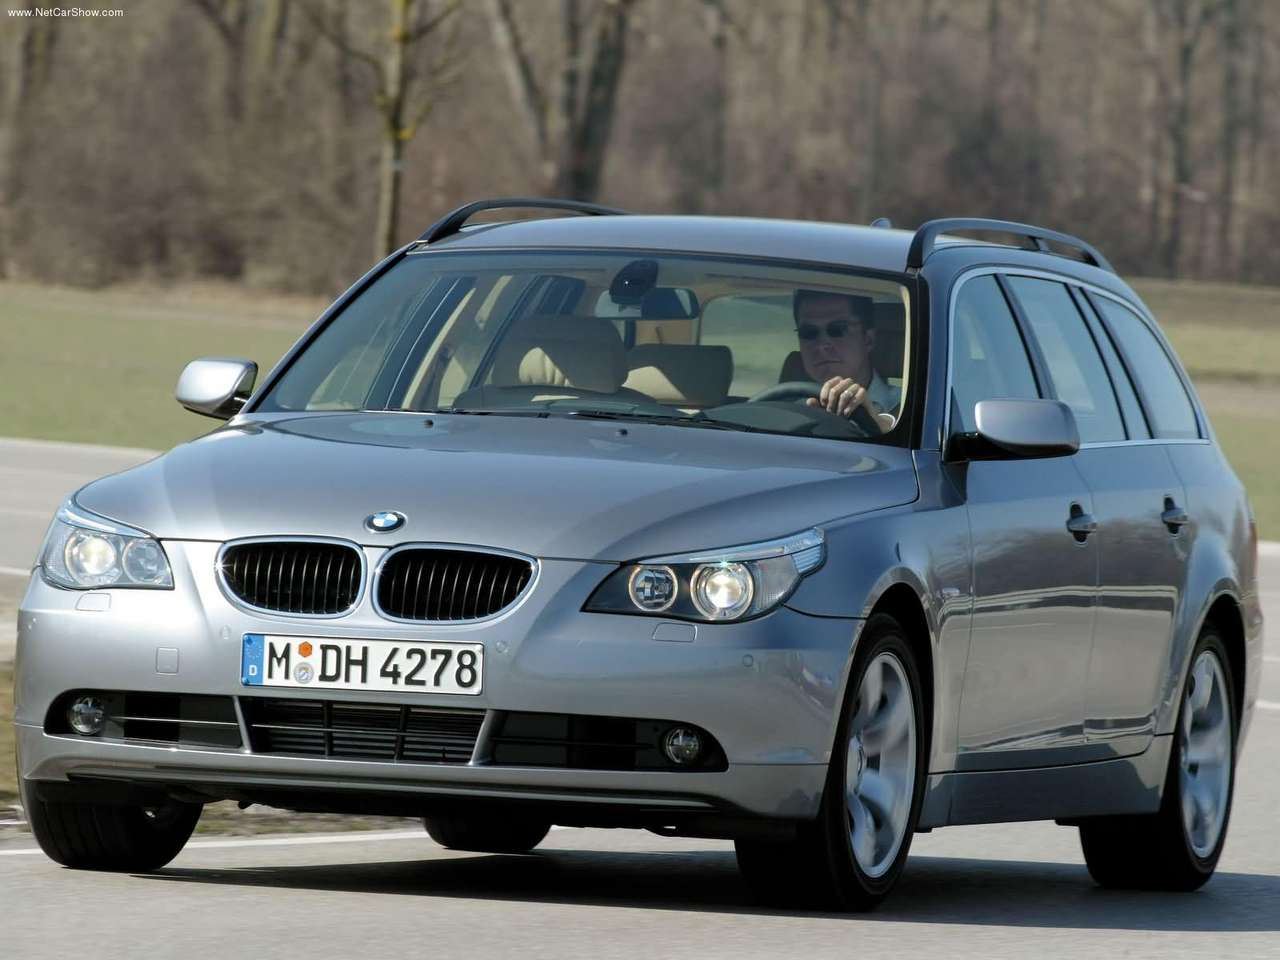 performance of cars: 2005 BMW 530d Touring